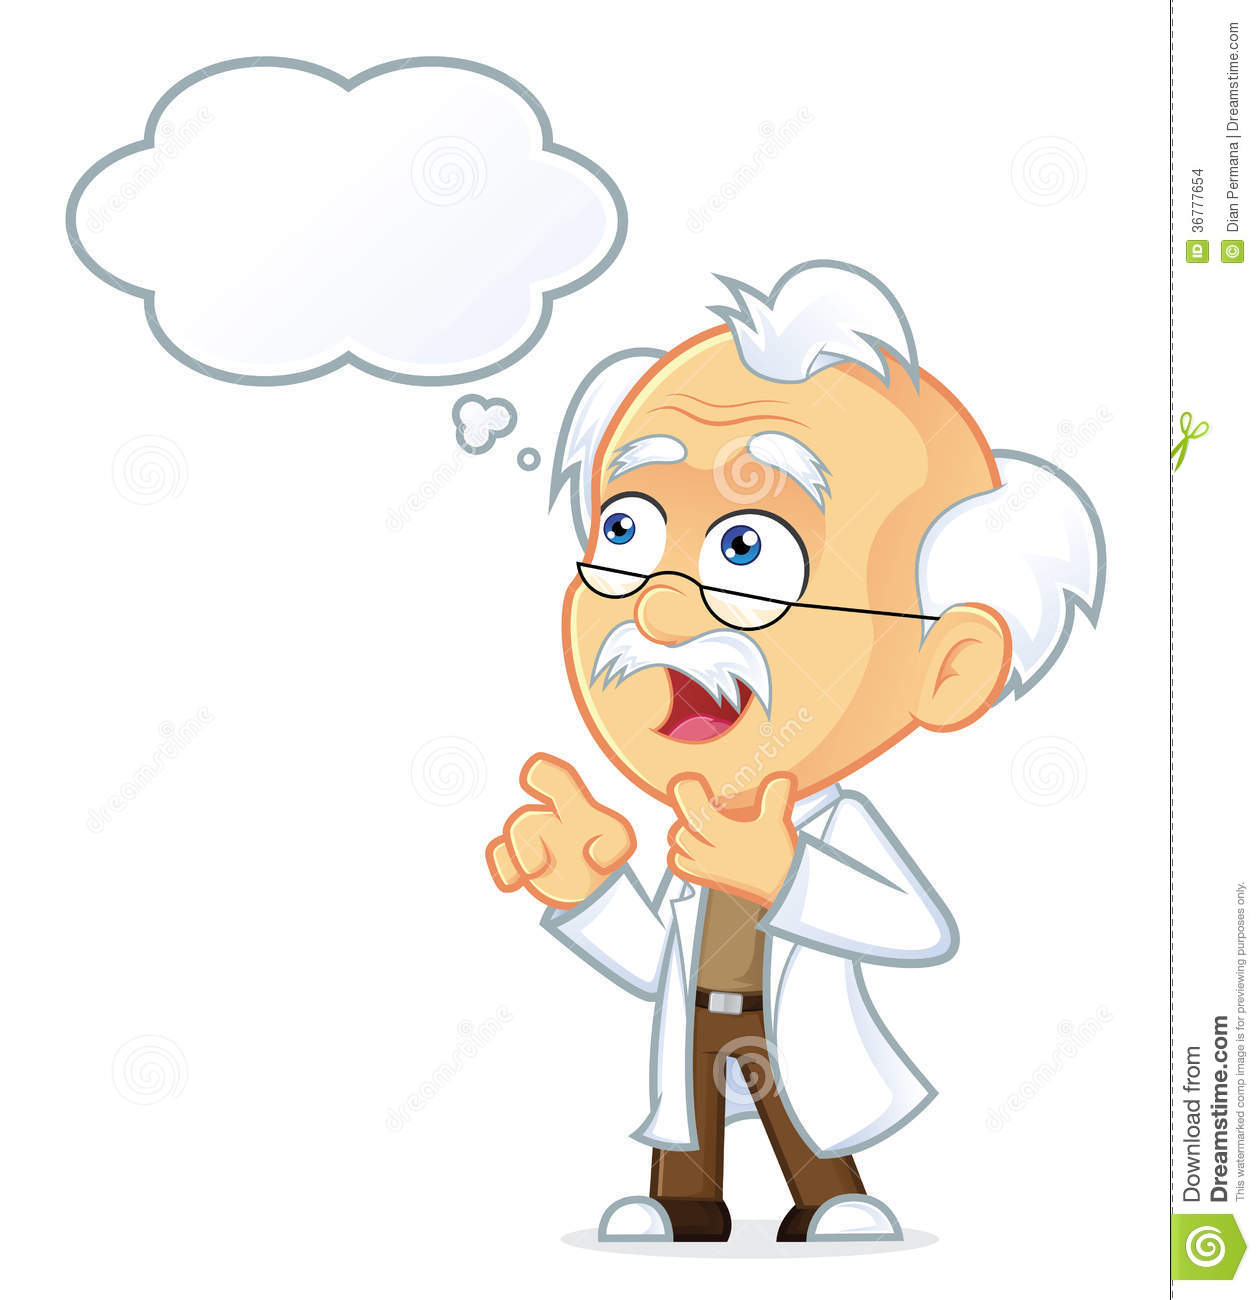 Professor Thinking With White Bubble Stock Images - Image: 36777654